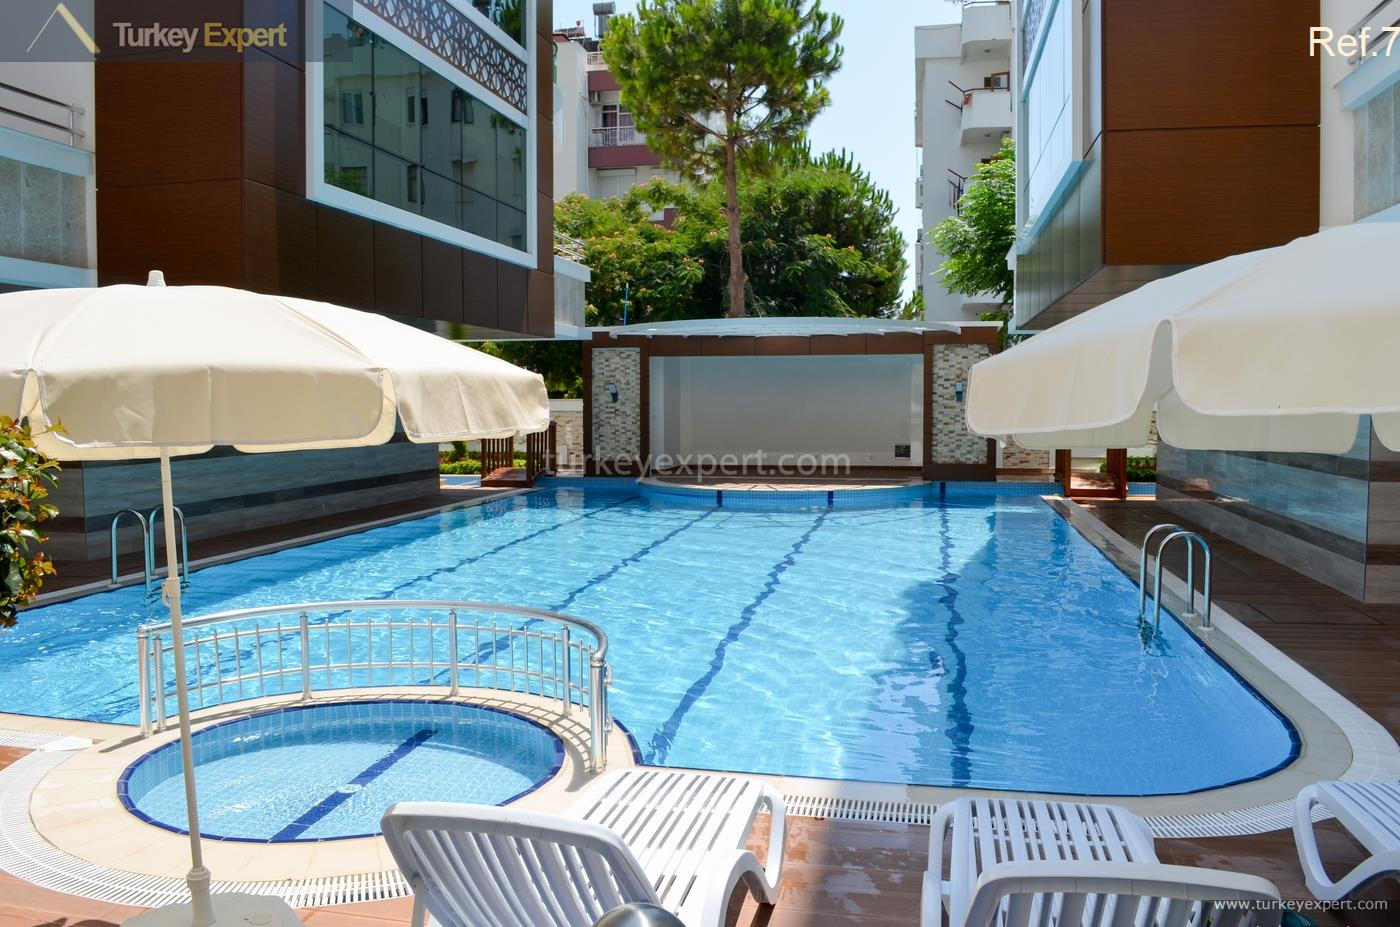 4apartments for sale in antalya59.